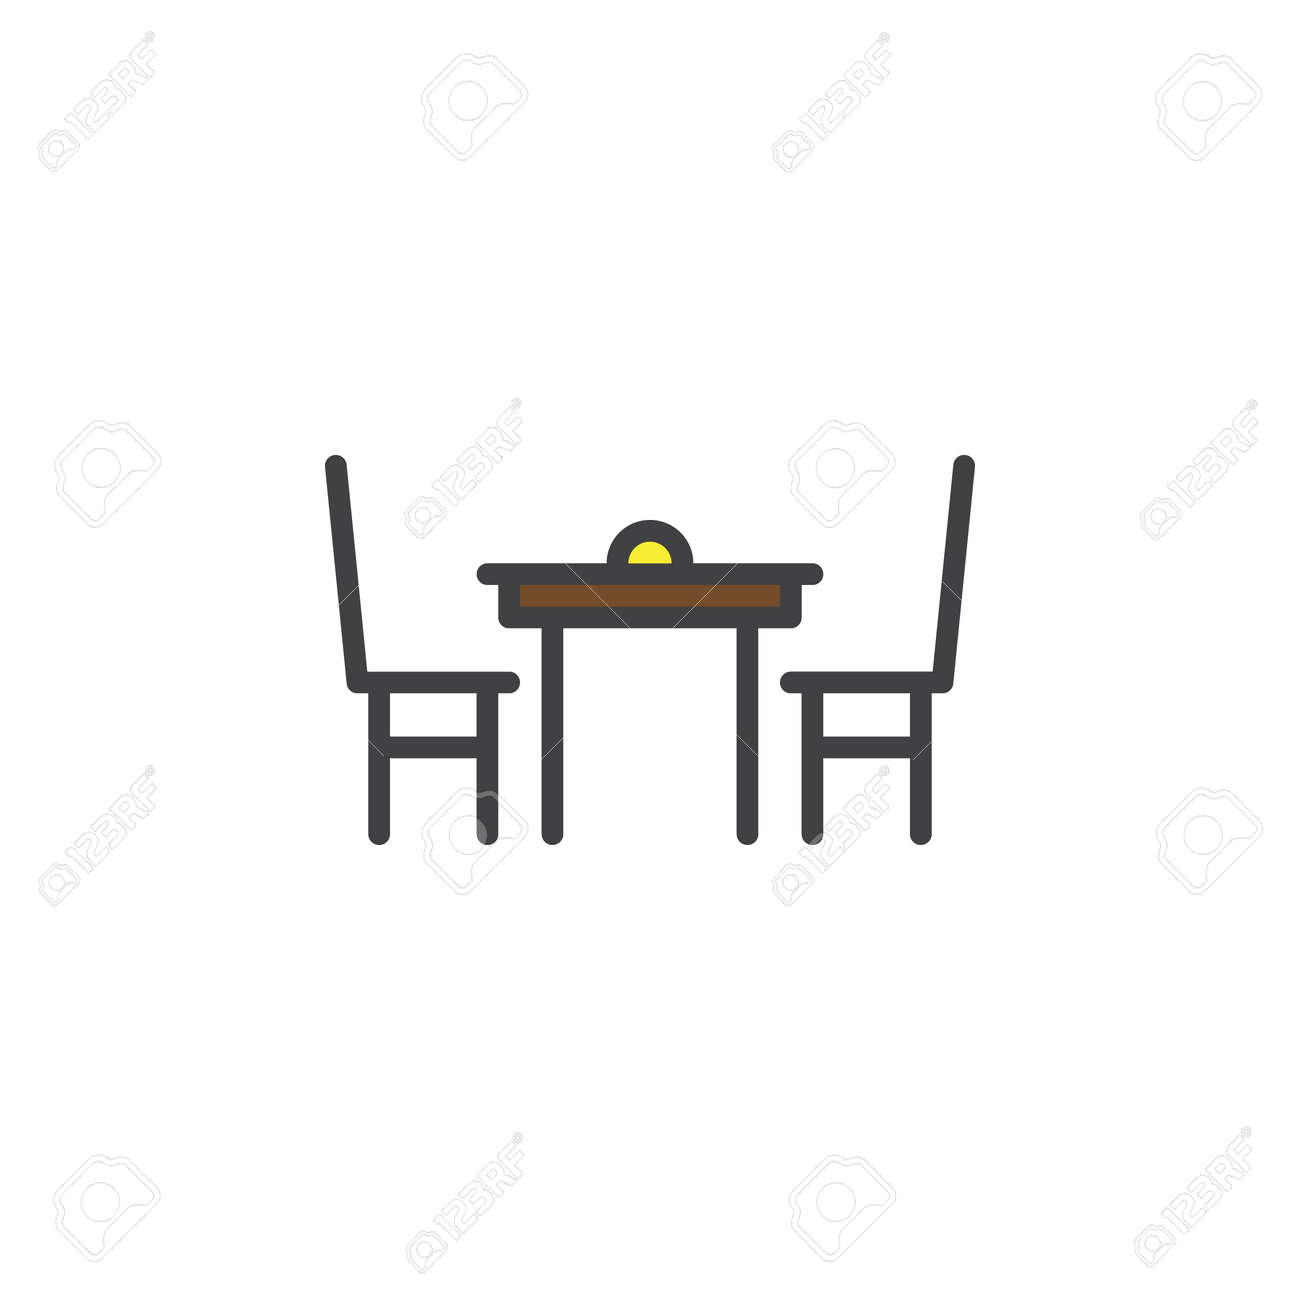 Dining Table With Chairs Filled Outline Icon Line Vector Sign Linear Colorful Pictogram Isolated